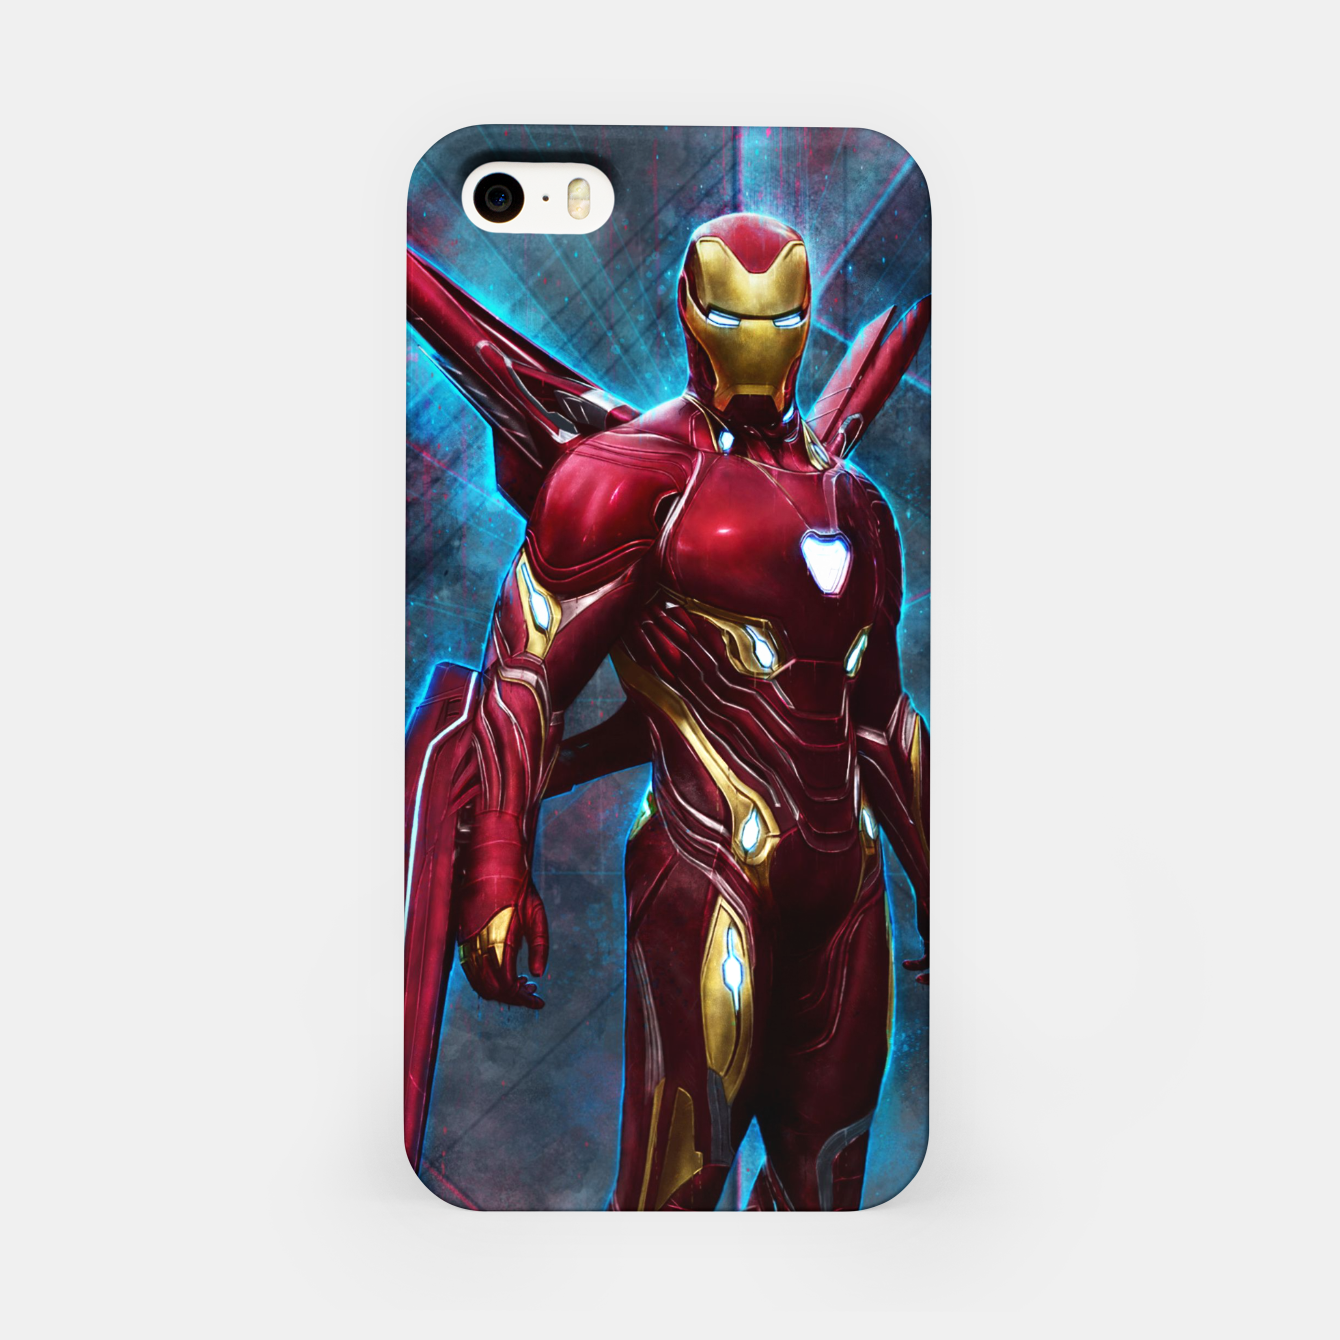 Image of iron man - Live Heroes